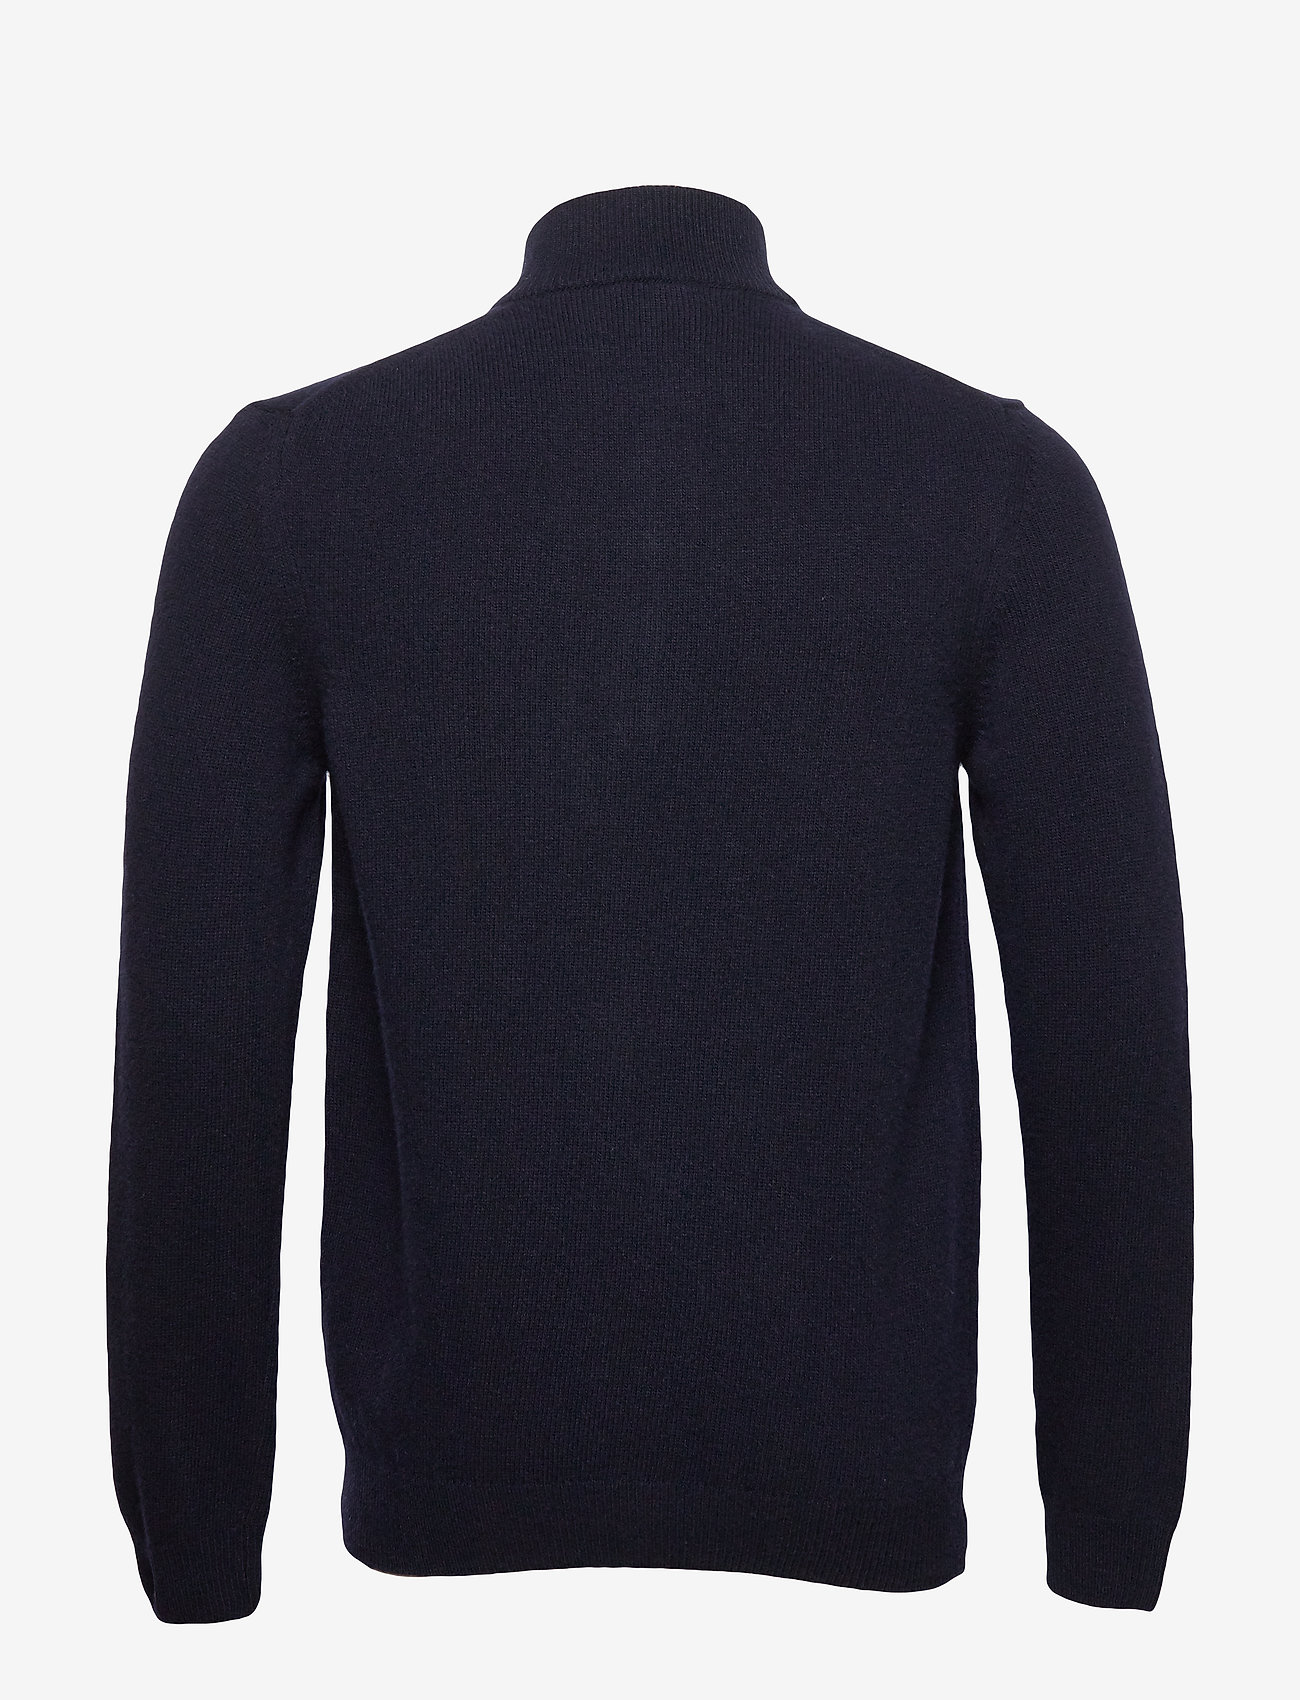 1/4 Zip Tipped Funnel Neck (Dark Navy) (649.35 kr) - Lyle & Scott